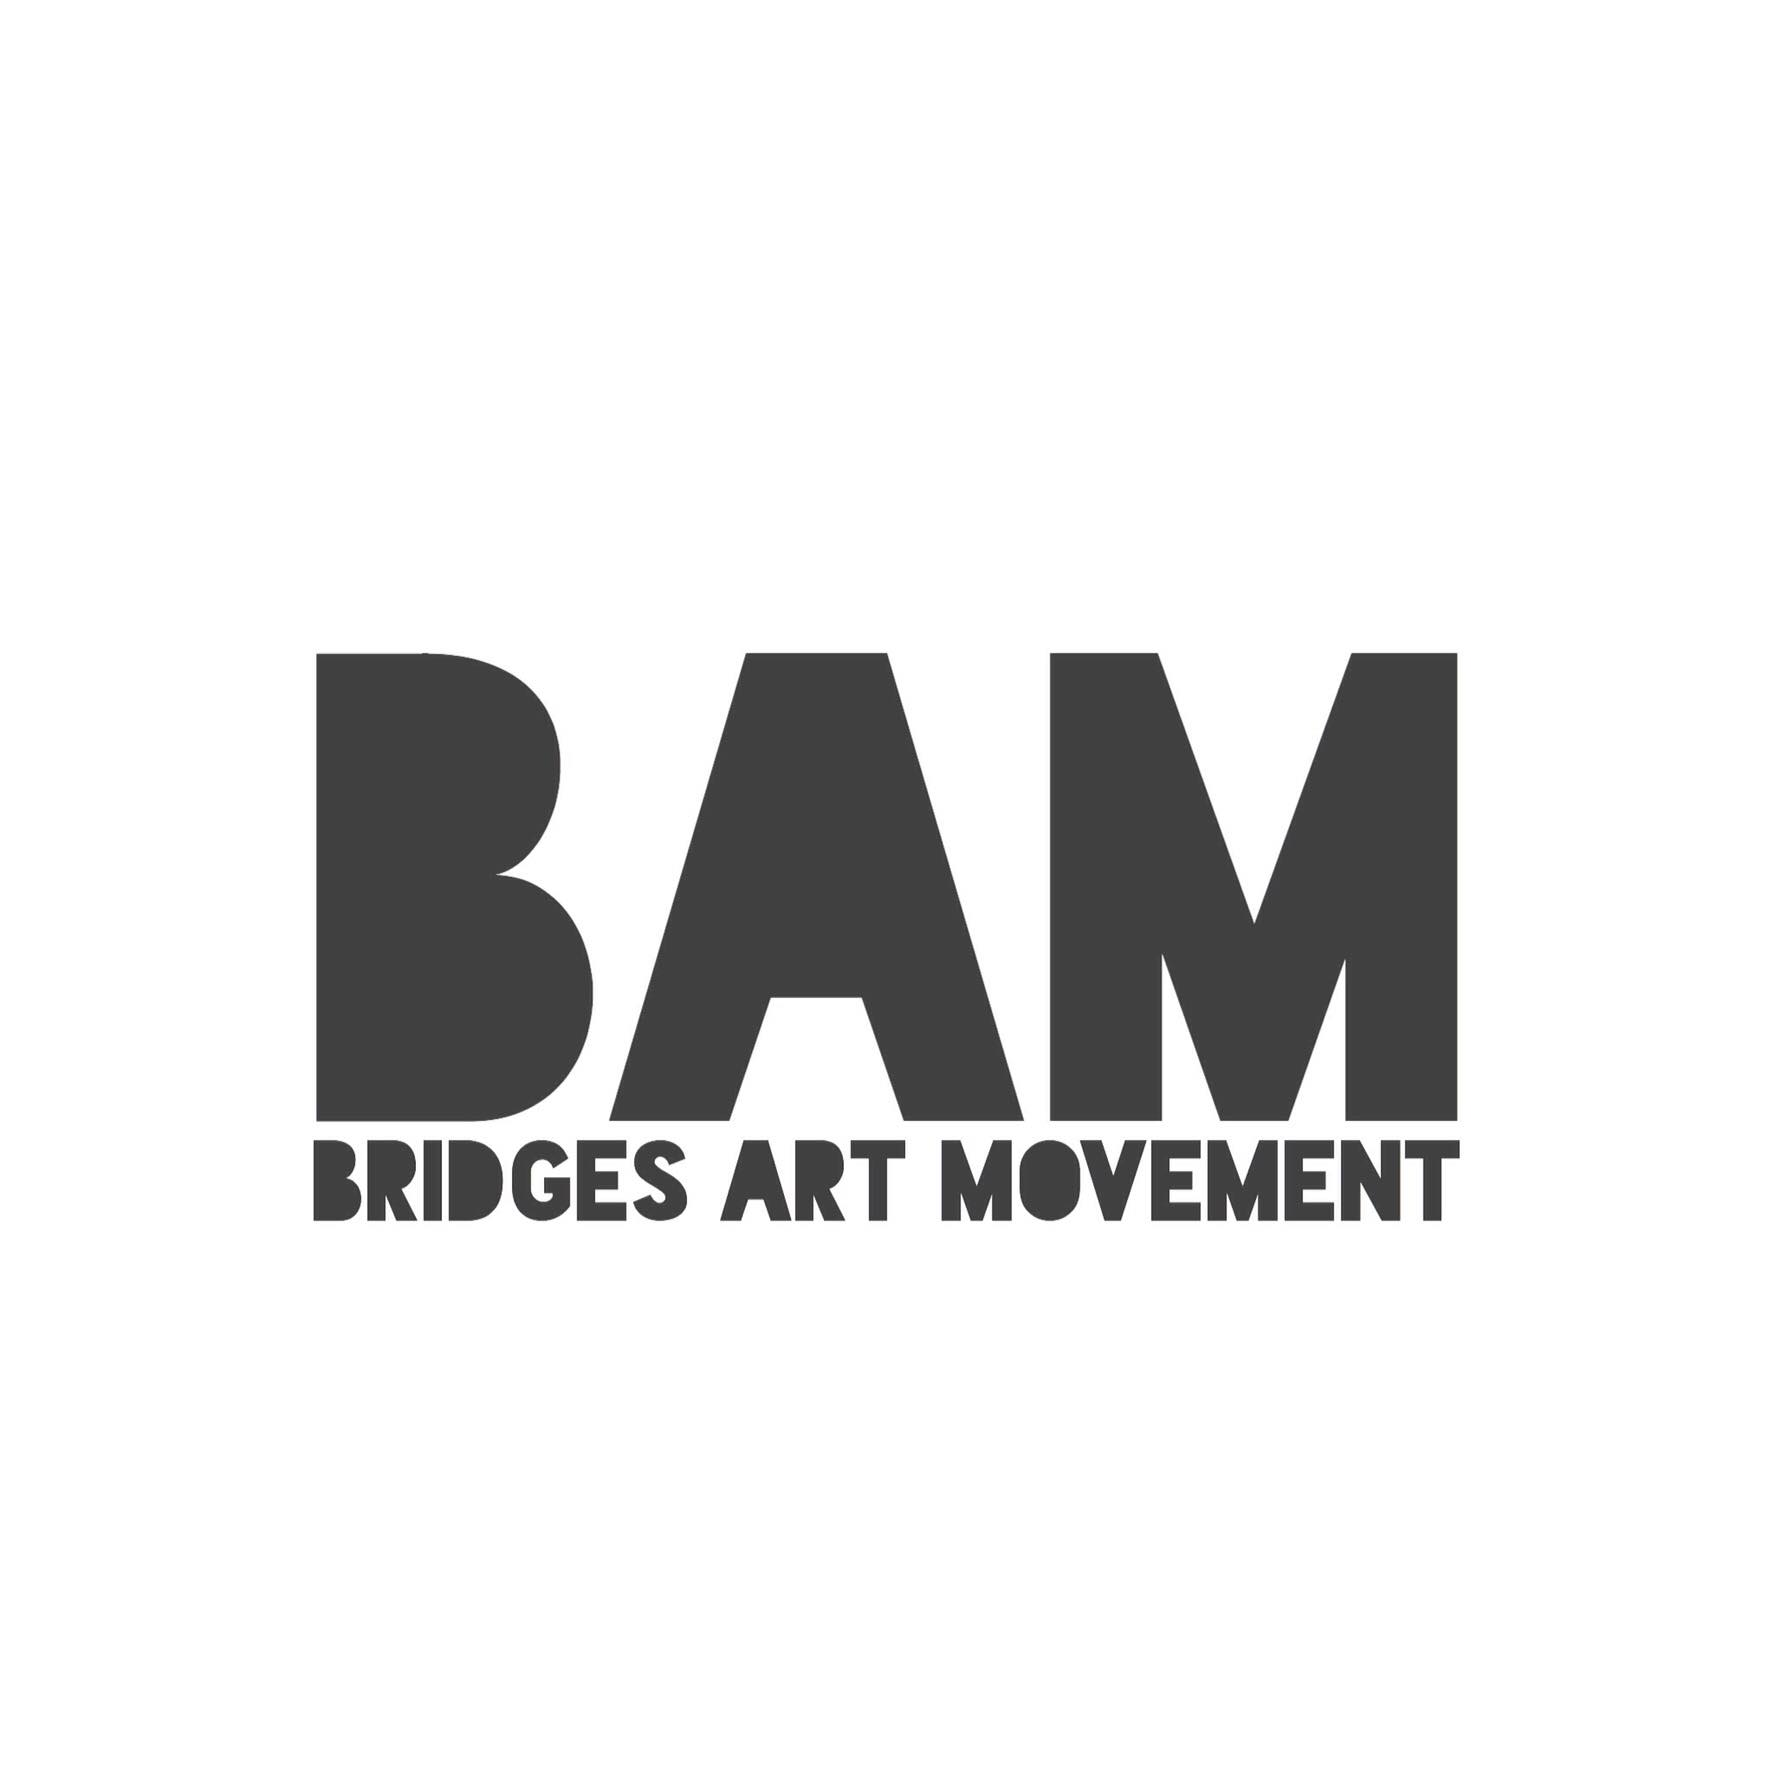 BAM (Bridges Art Movement)